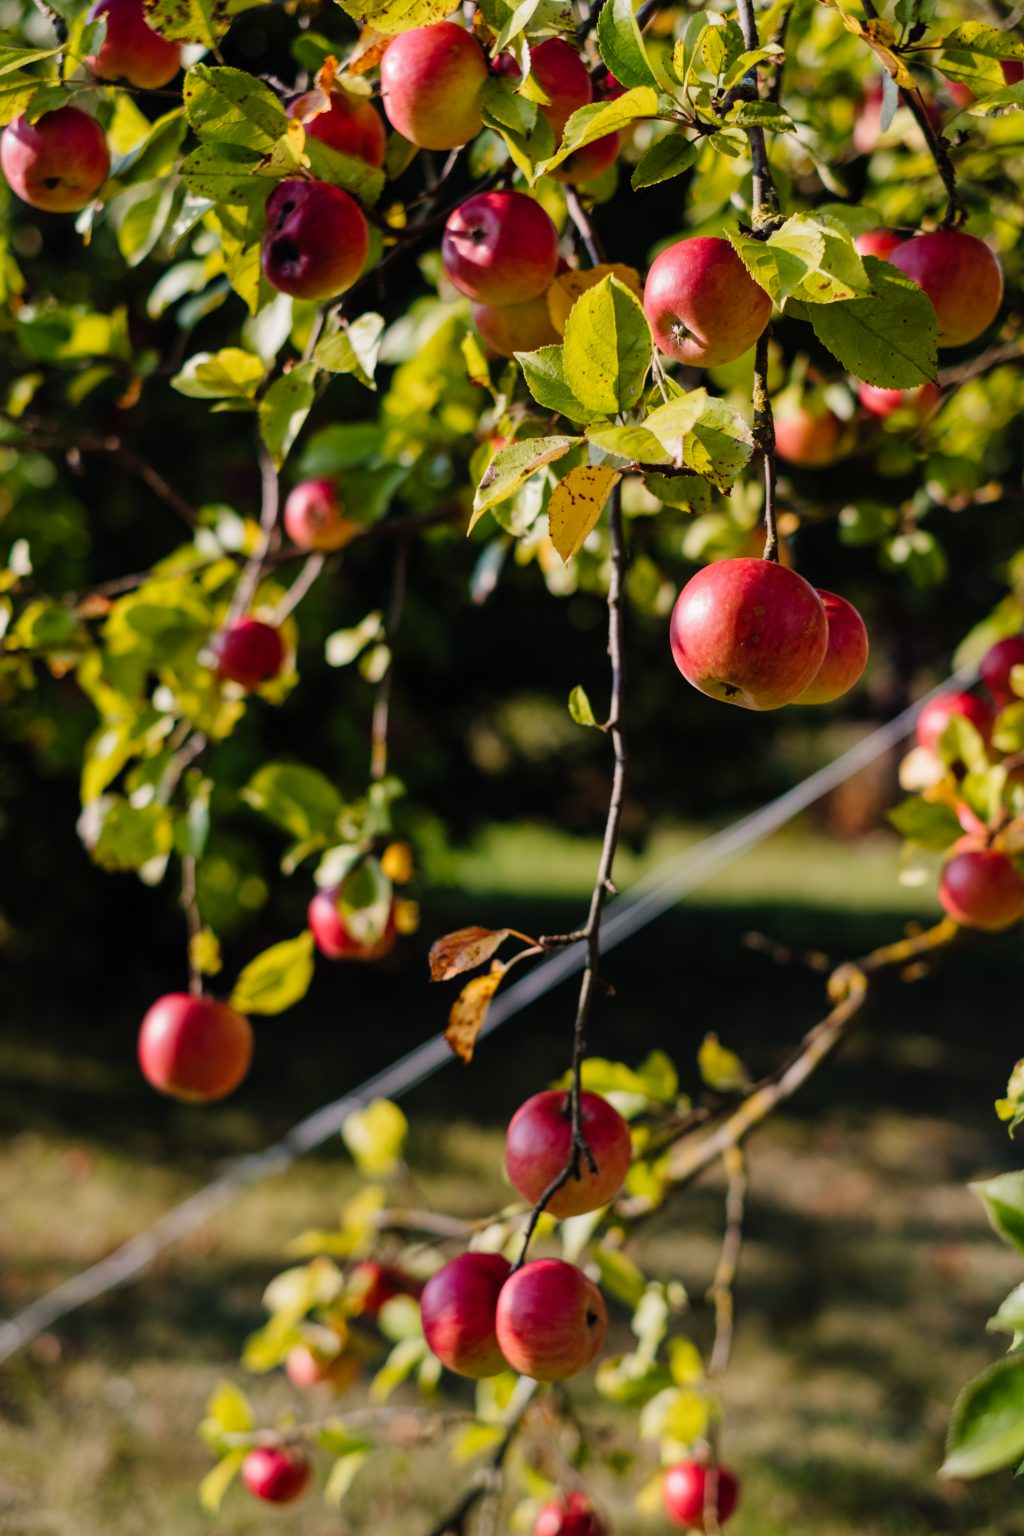 Apples on a tree 5 - free stock photo